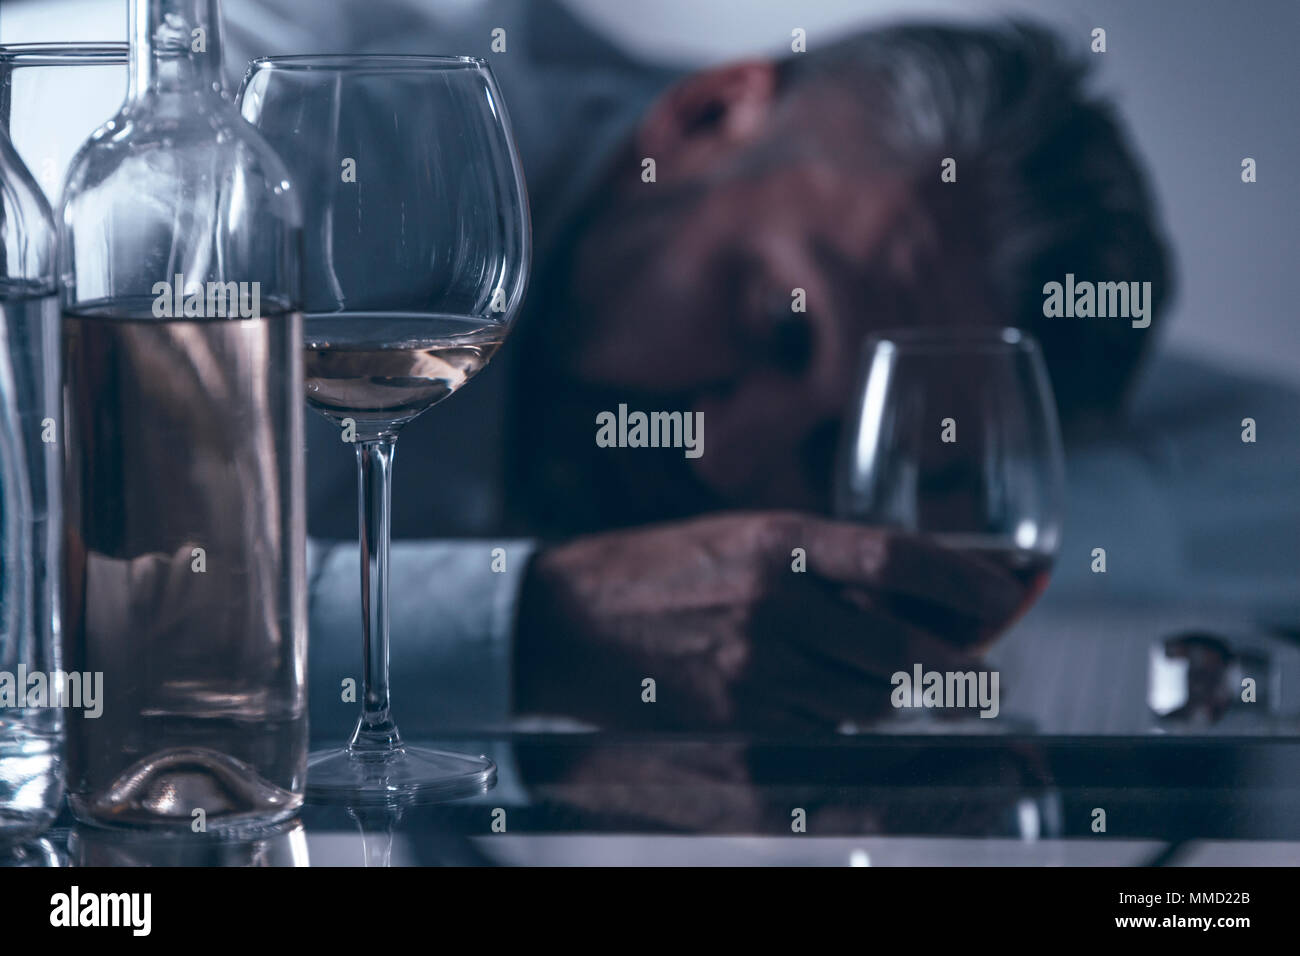 Close-up of a drunken desperate middle-aged man leaning on the table behind bottles and glasses with alcohol - Stock Image